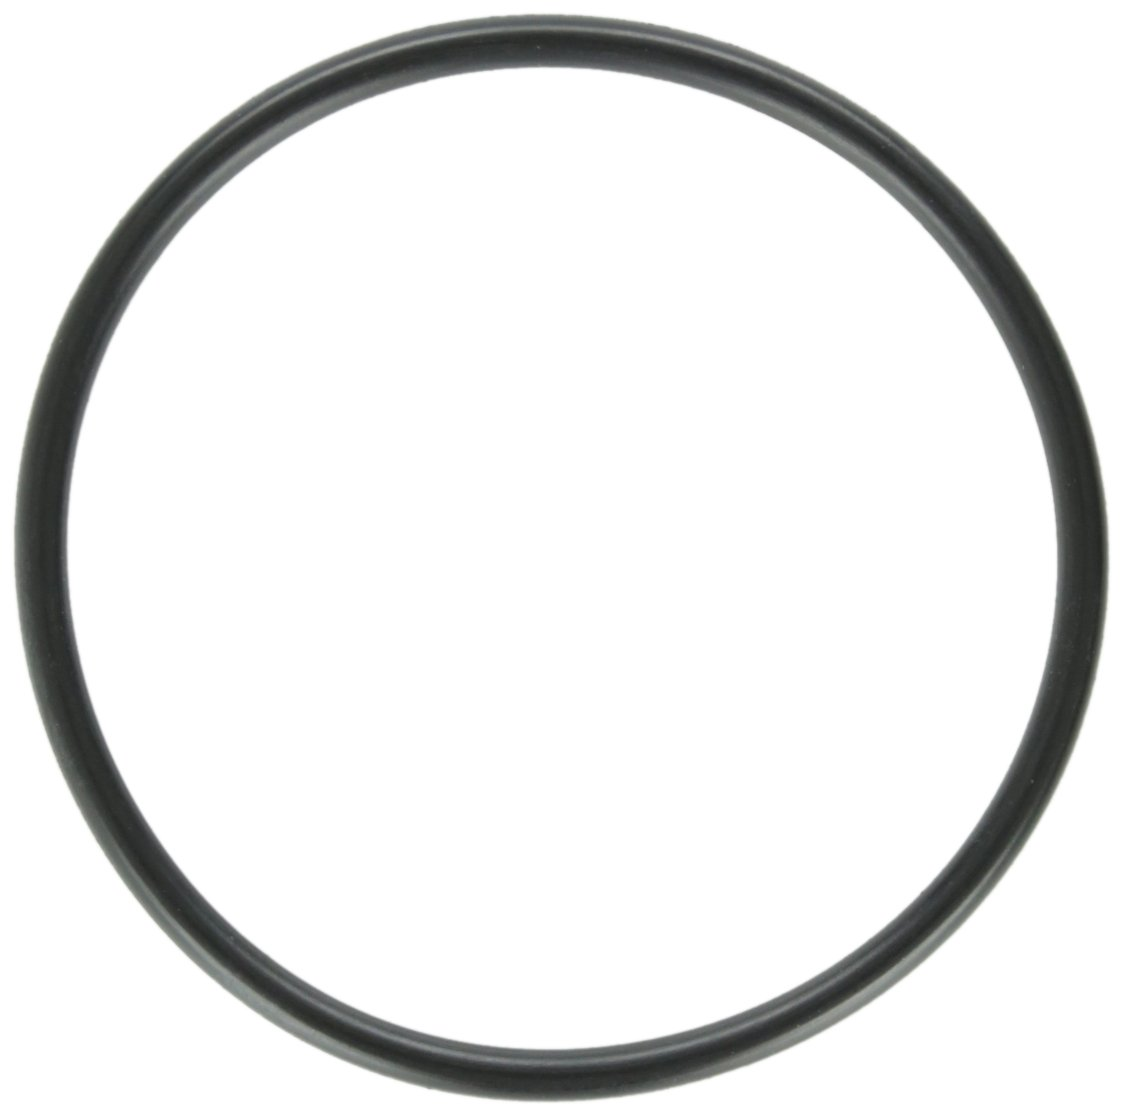 Aladdin O-128-9 O-Ring Replacement for select Pool and Spa Pumps and Filters